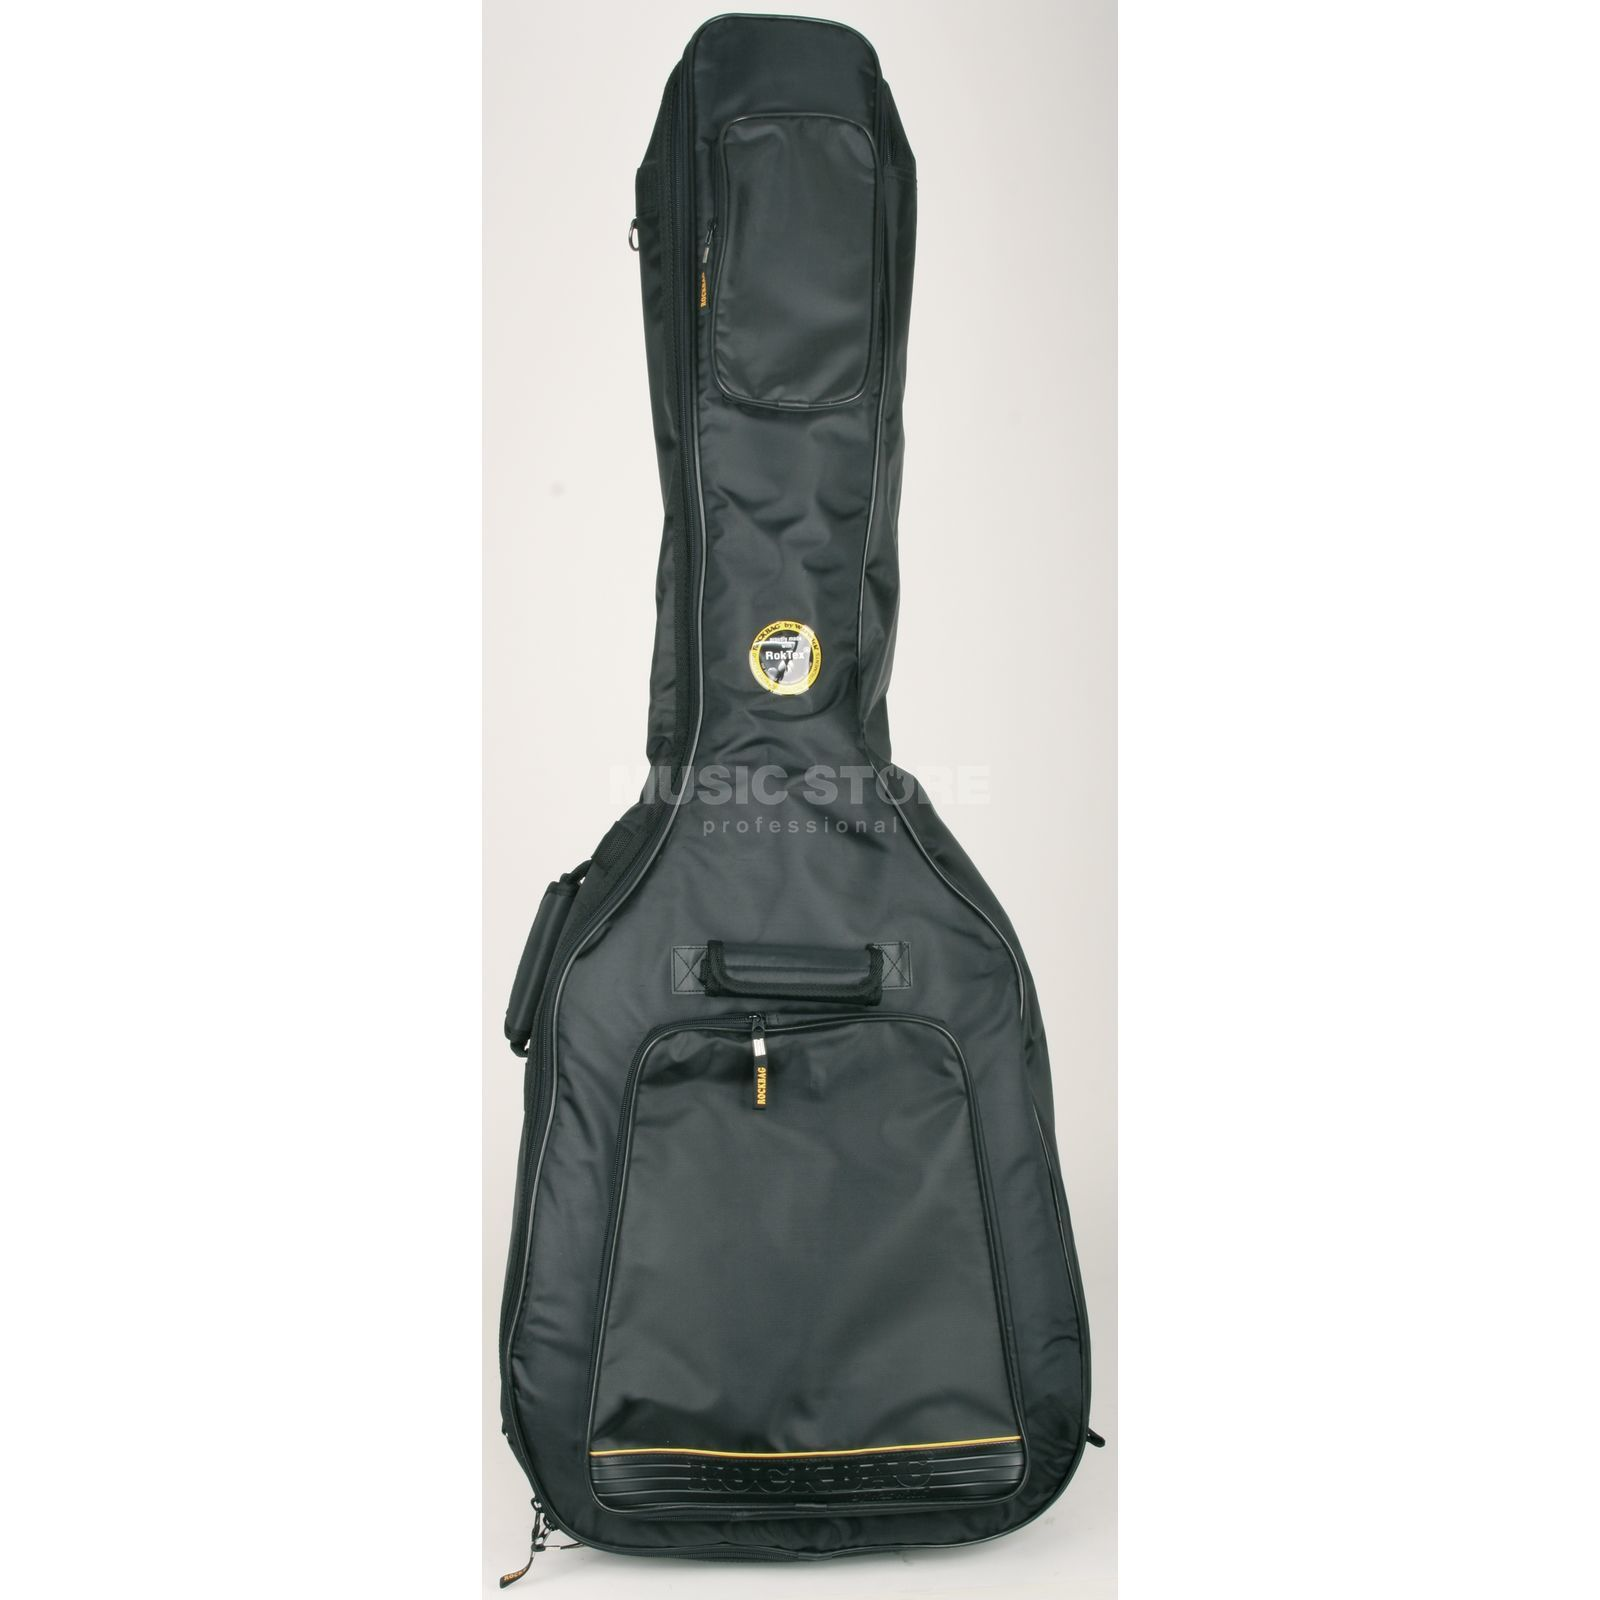 Rockbag RB 20510 Acoustic Bass Bag Deluxe Line Produktbild